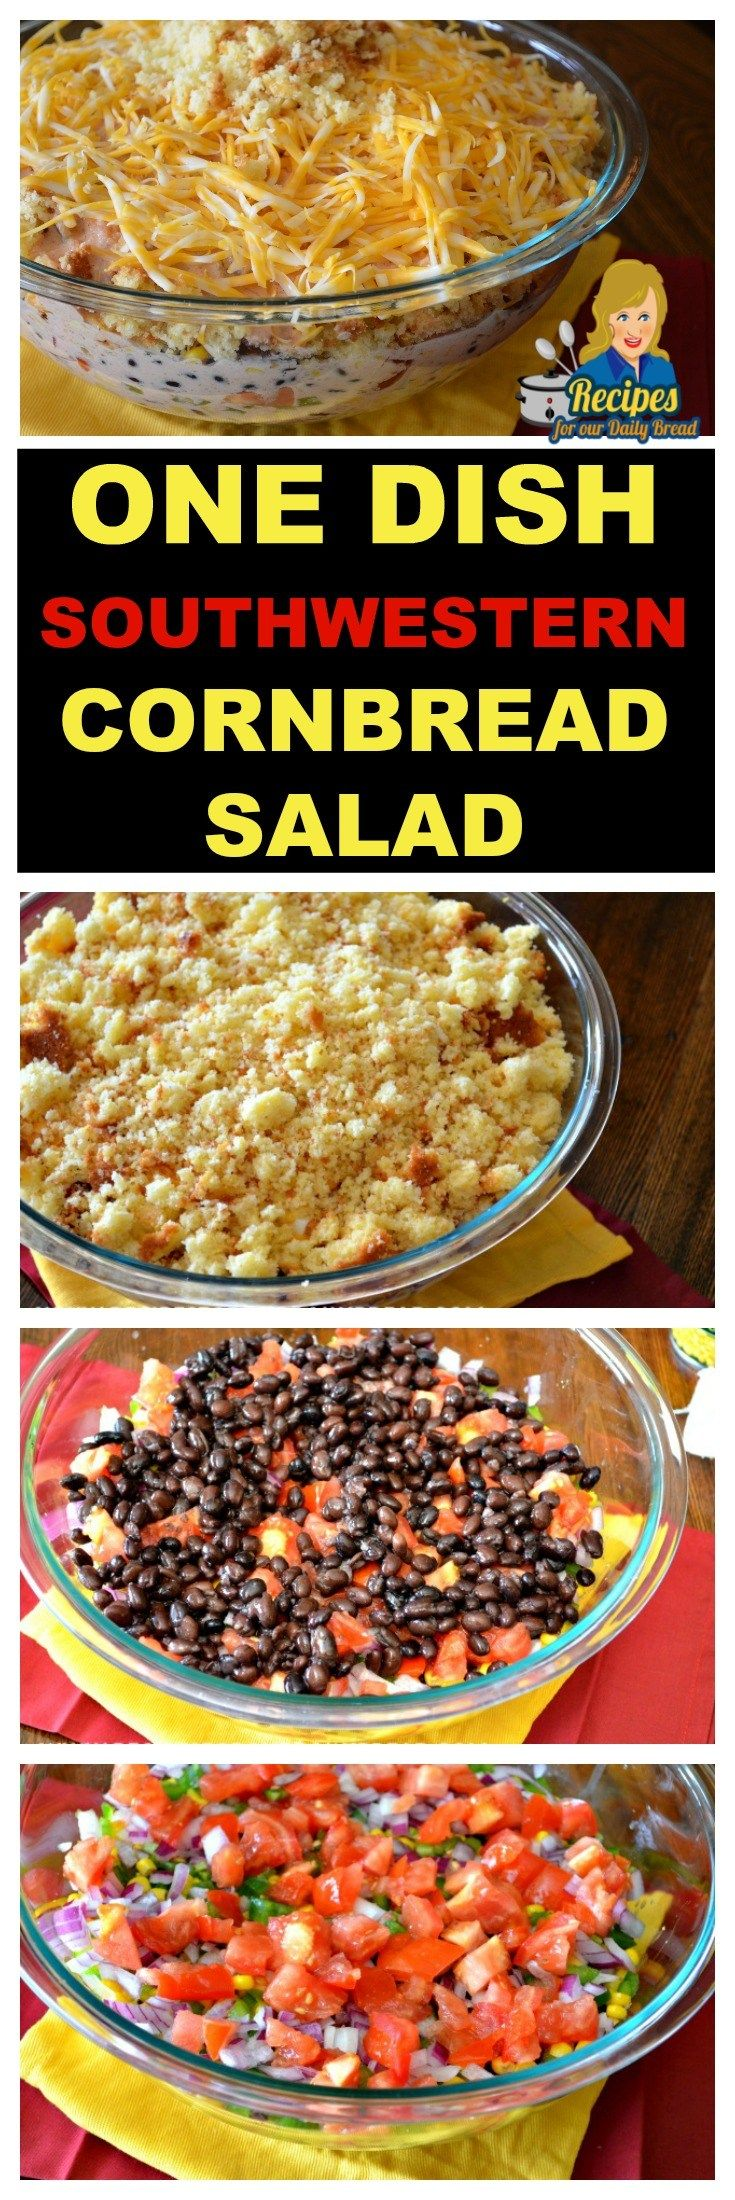 HOW TO MAKE ONE DISH SOUTHWESTERN CORNBREAD SALAD  You Should See Full Recipe HERE: http://recipesforourdailybread.com/southwestern-cornbread-salad/